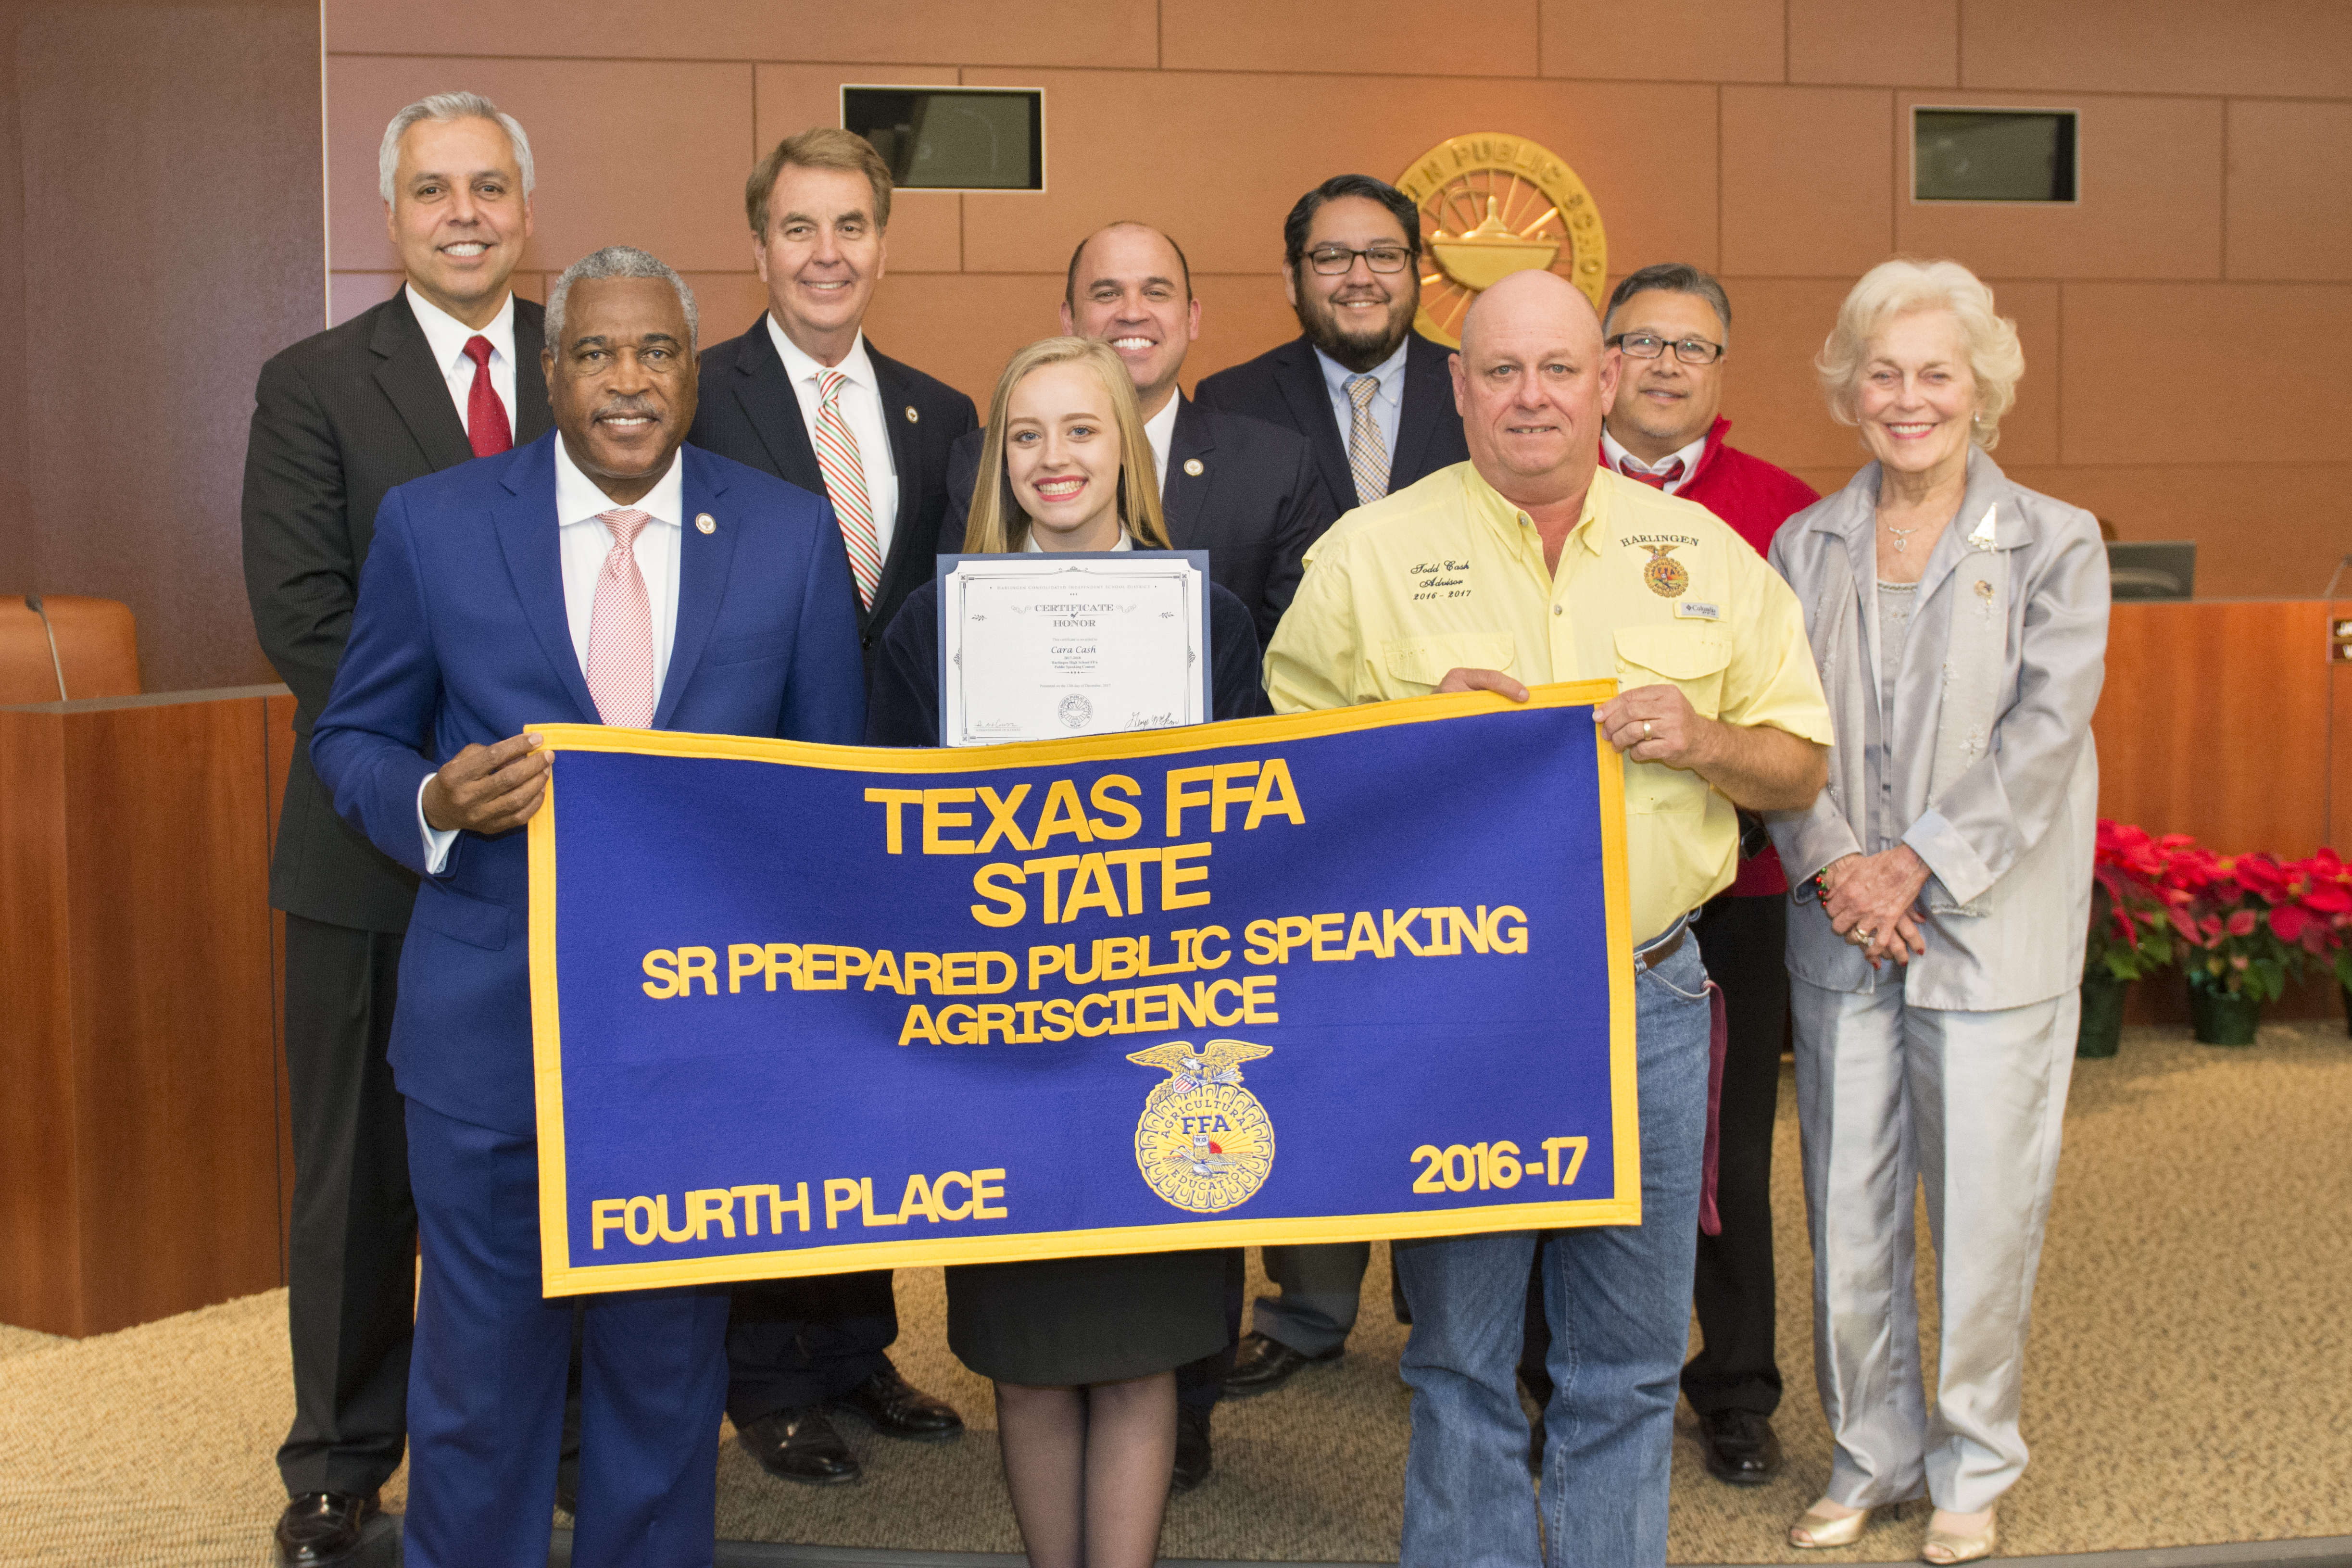 HHS student recognized for success at FFA Public Speaking Contest